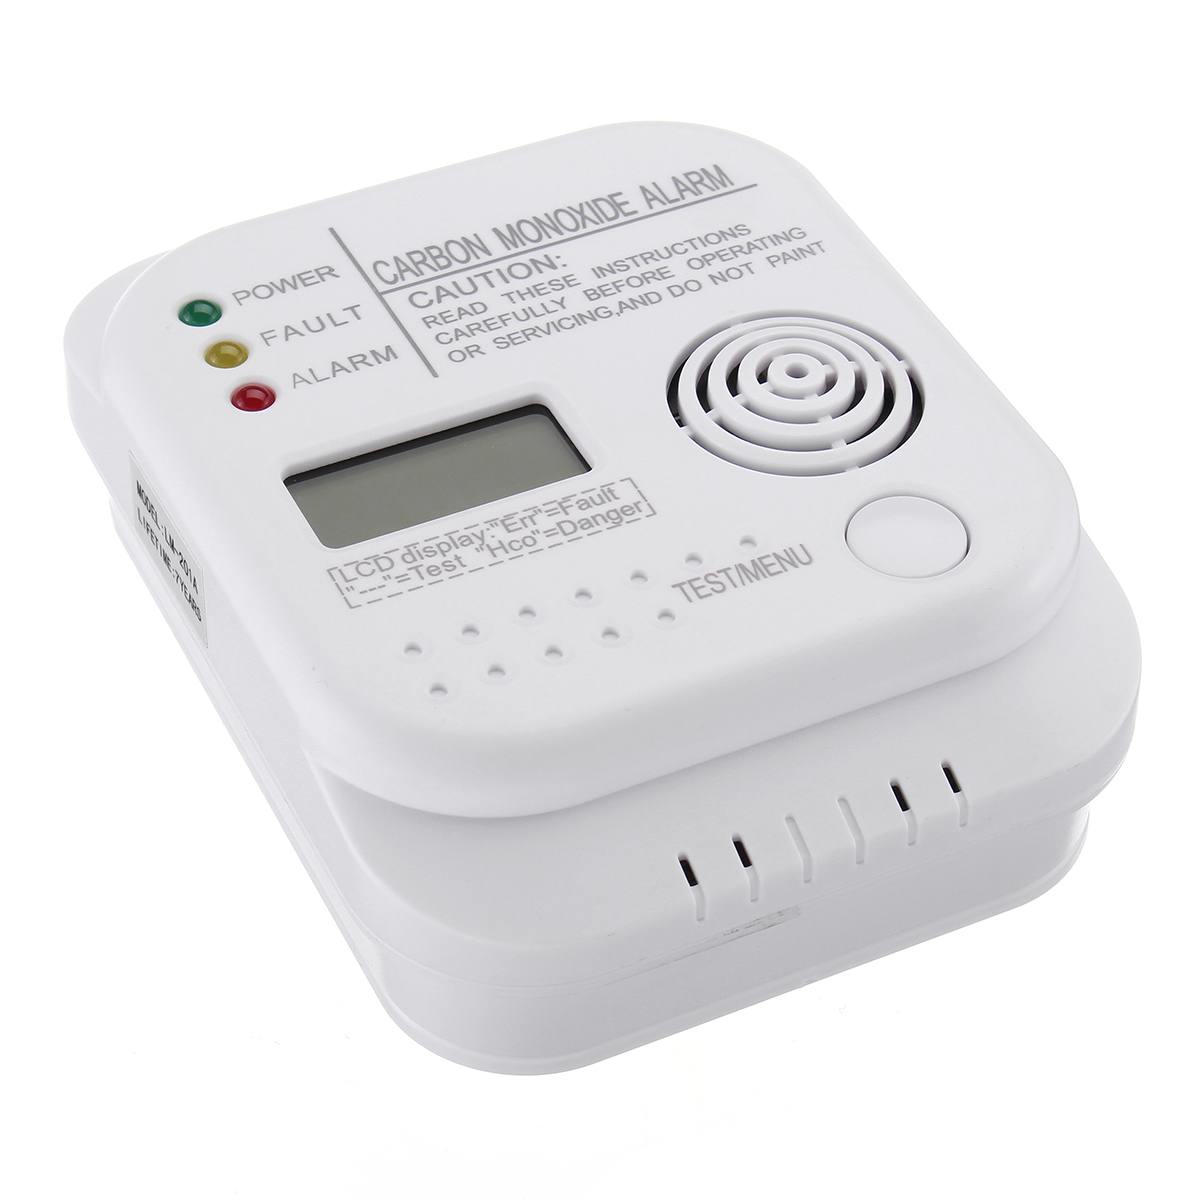 NEW Safurance CO Carbon Monoxide Alarm Detector LCD Digital Home Security Indepedent Sensor Safety